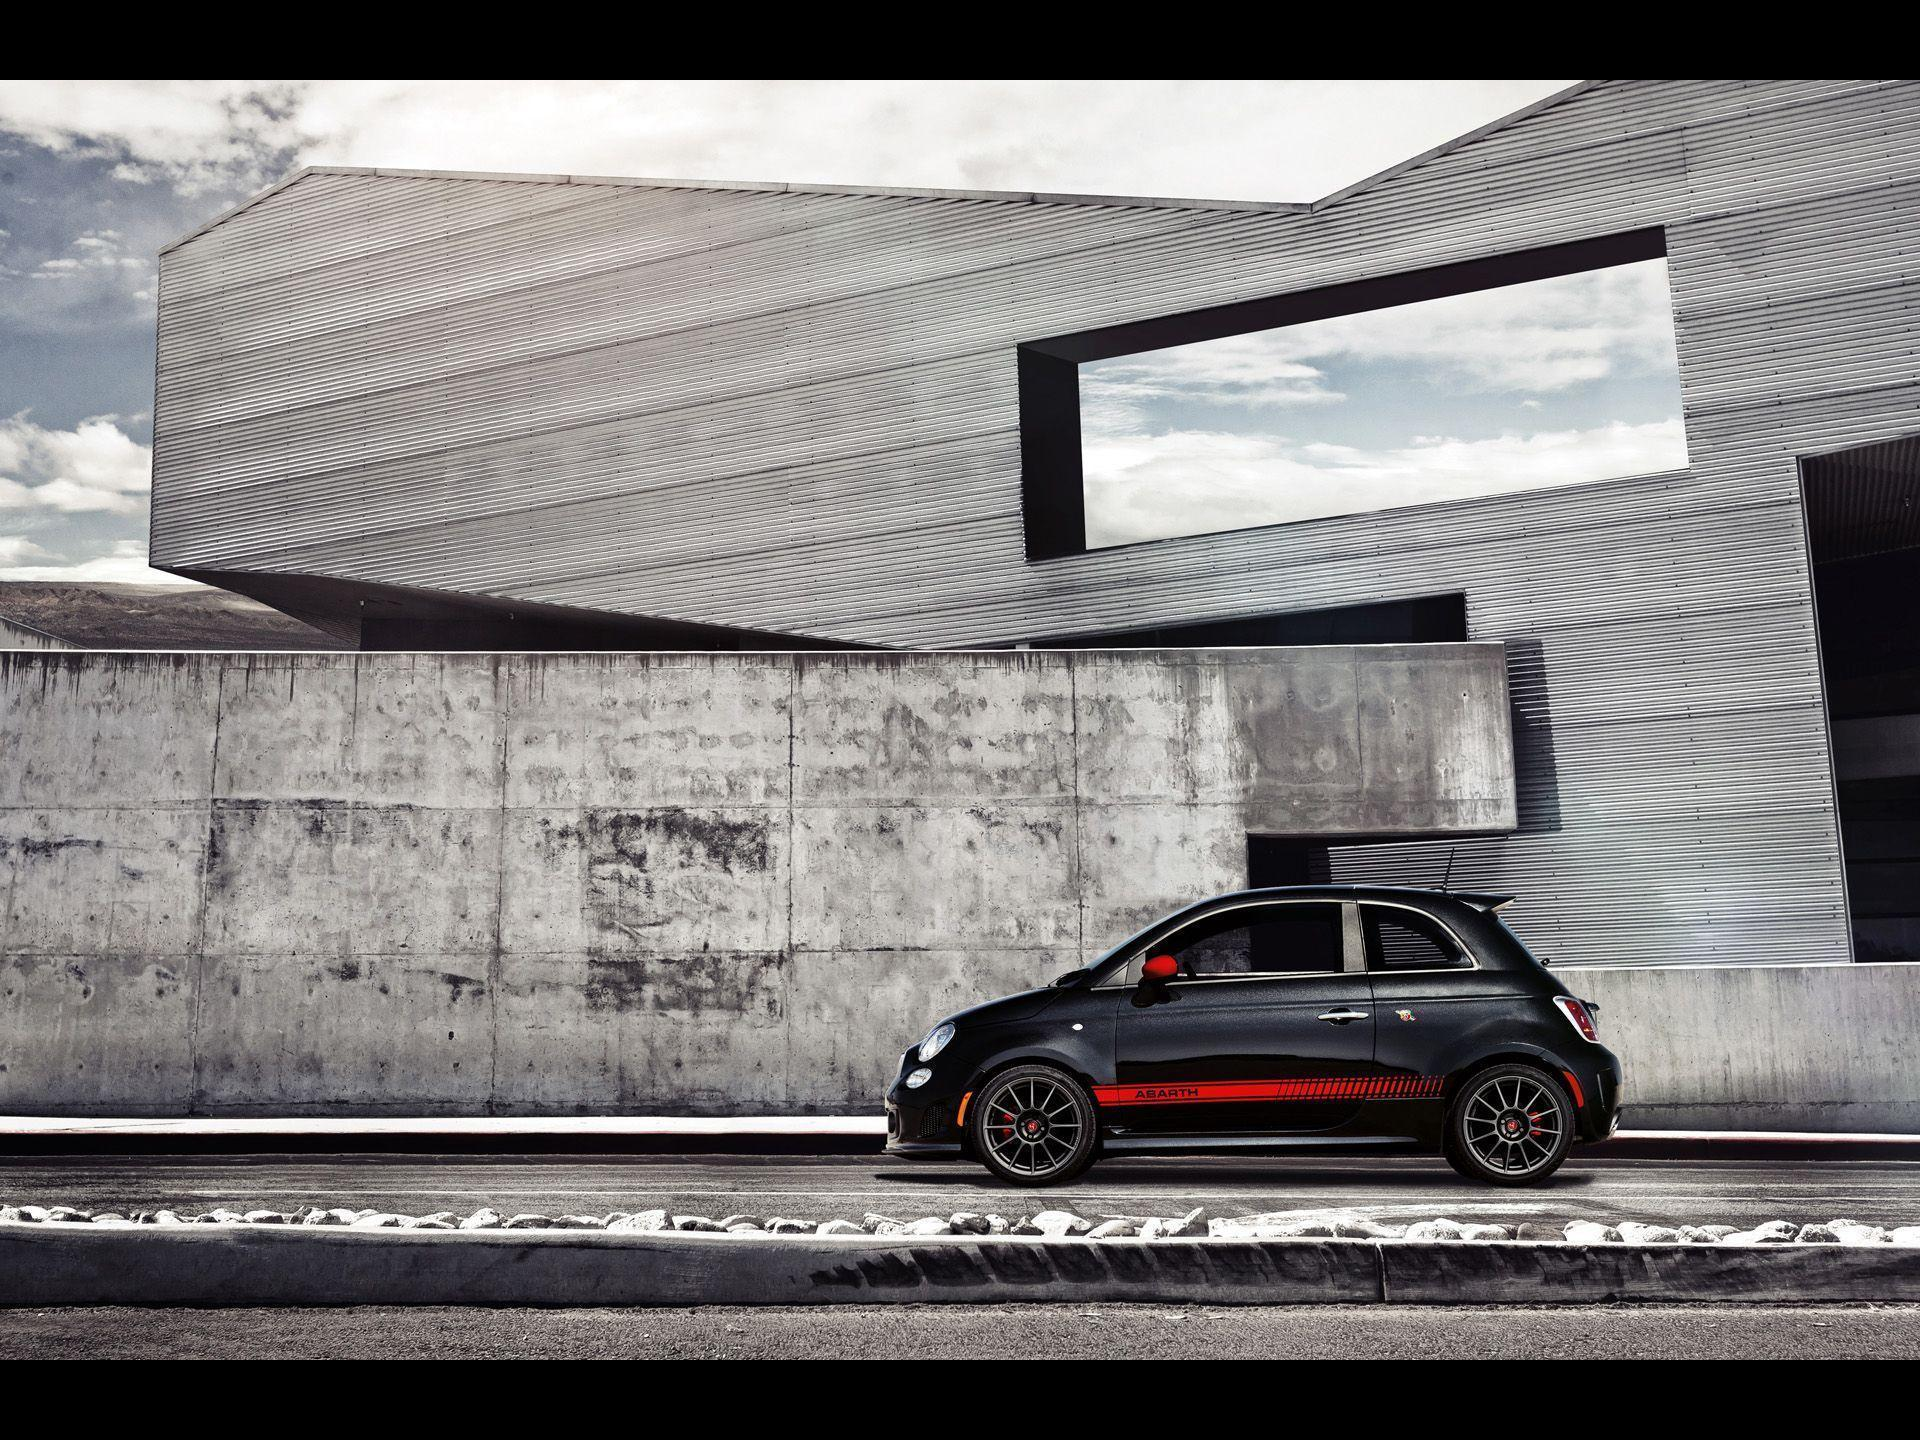 Fiat 500 Abarth Architecture wallpapers | Fiat 500 Abarth ...